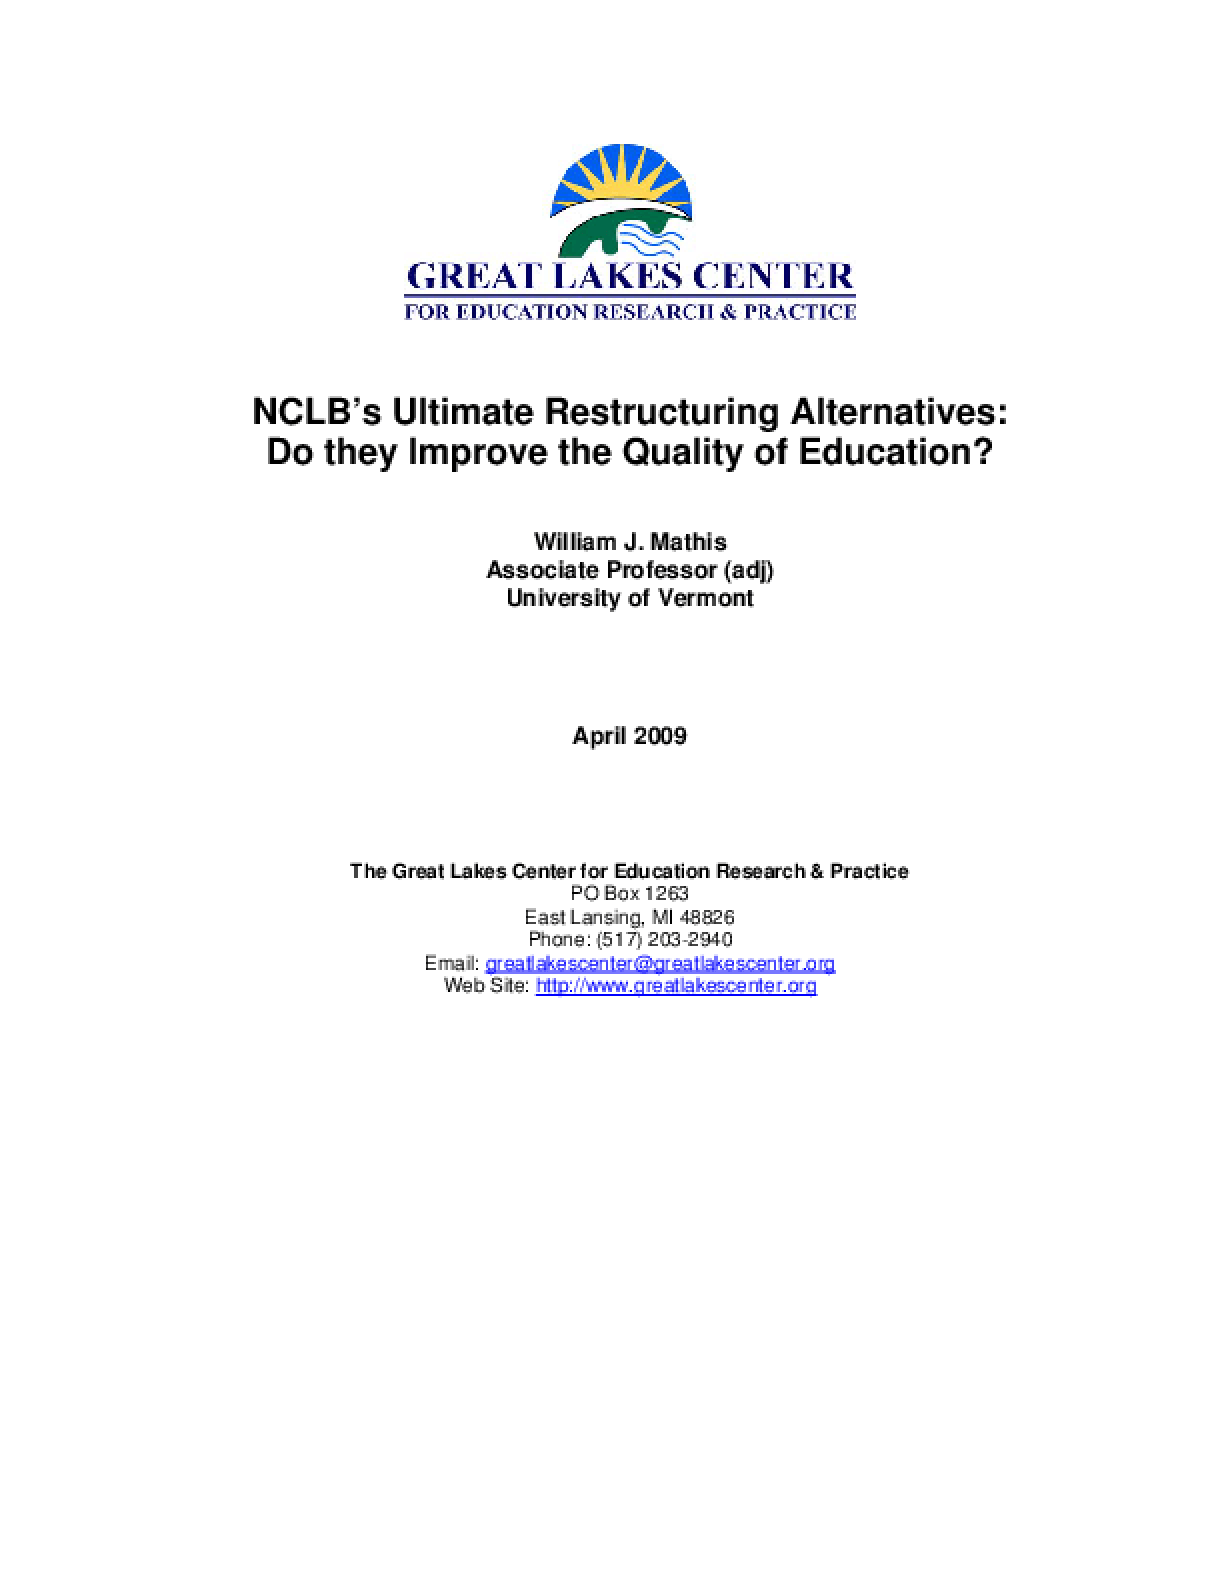 NCLB's Ultimate Restructuring Alternatives: Do they Improve the Quality of Education?